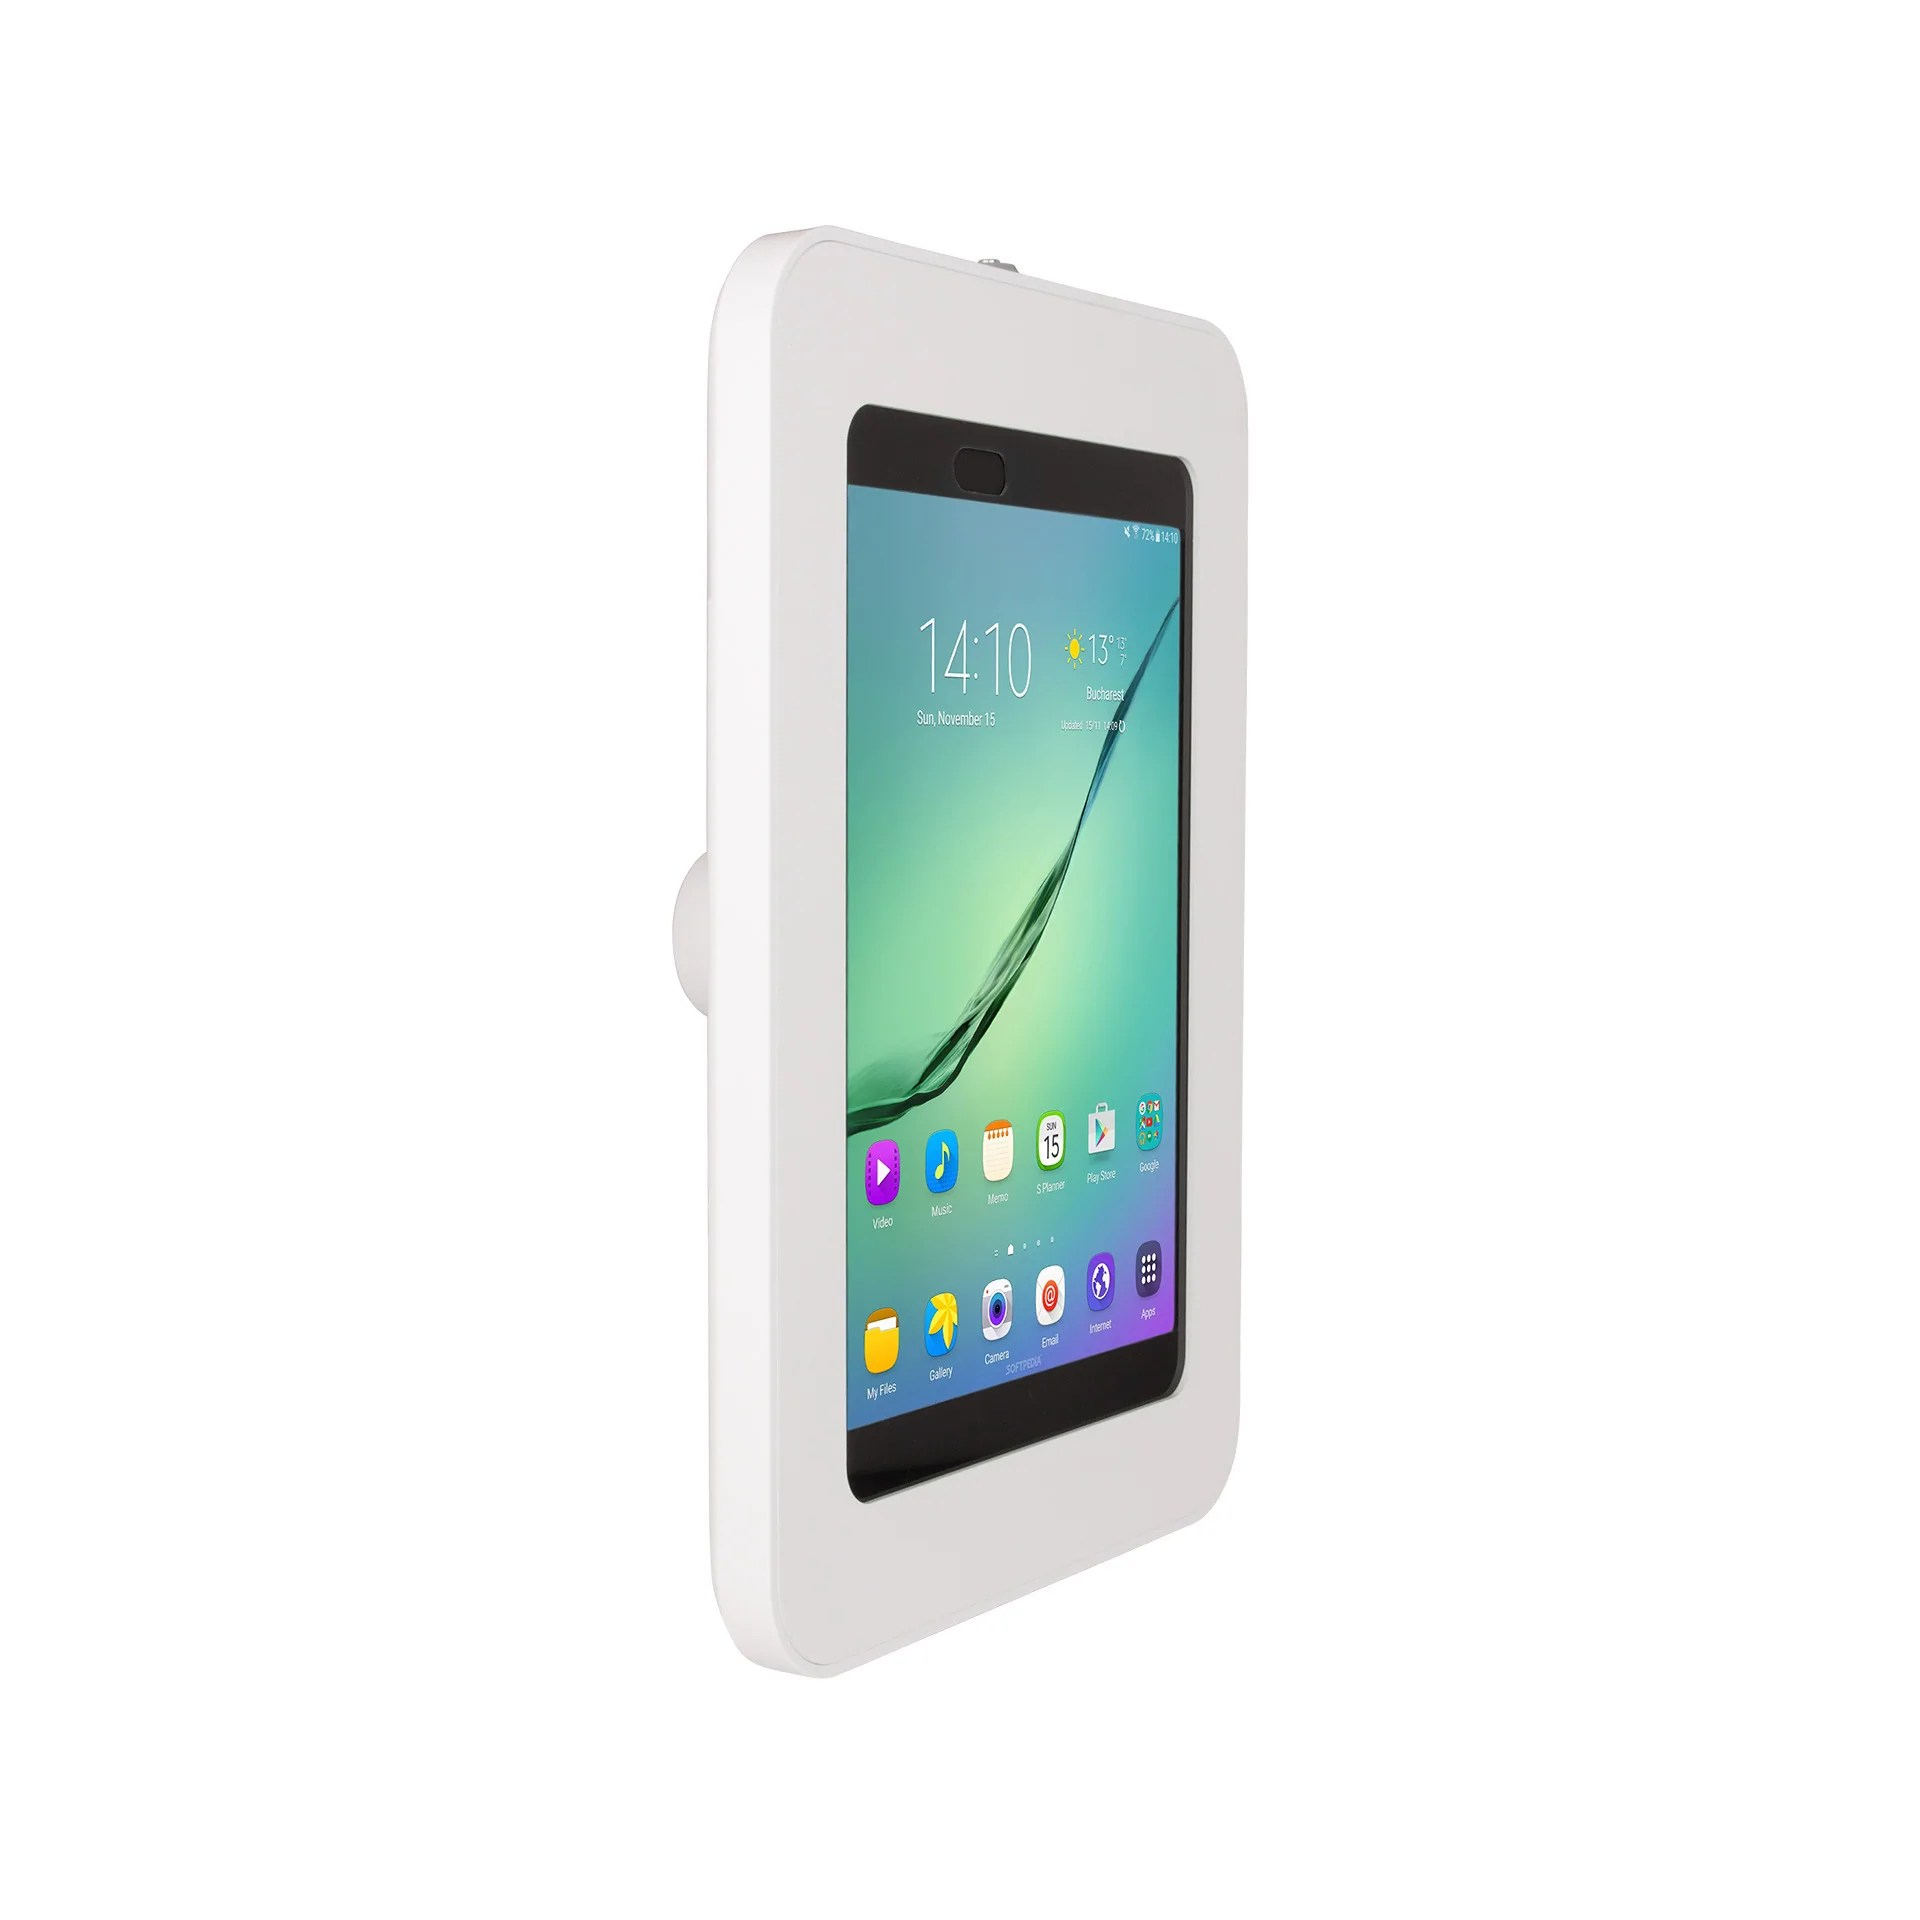 Galaxy Tab 9.7 Elevate Ii On Wall Mount Kiosk For Galaxy Tab S3 S2 9 7 White